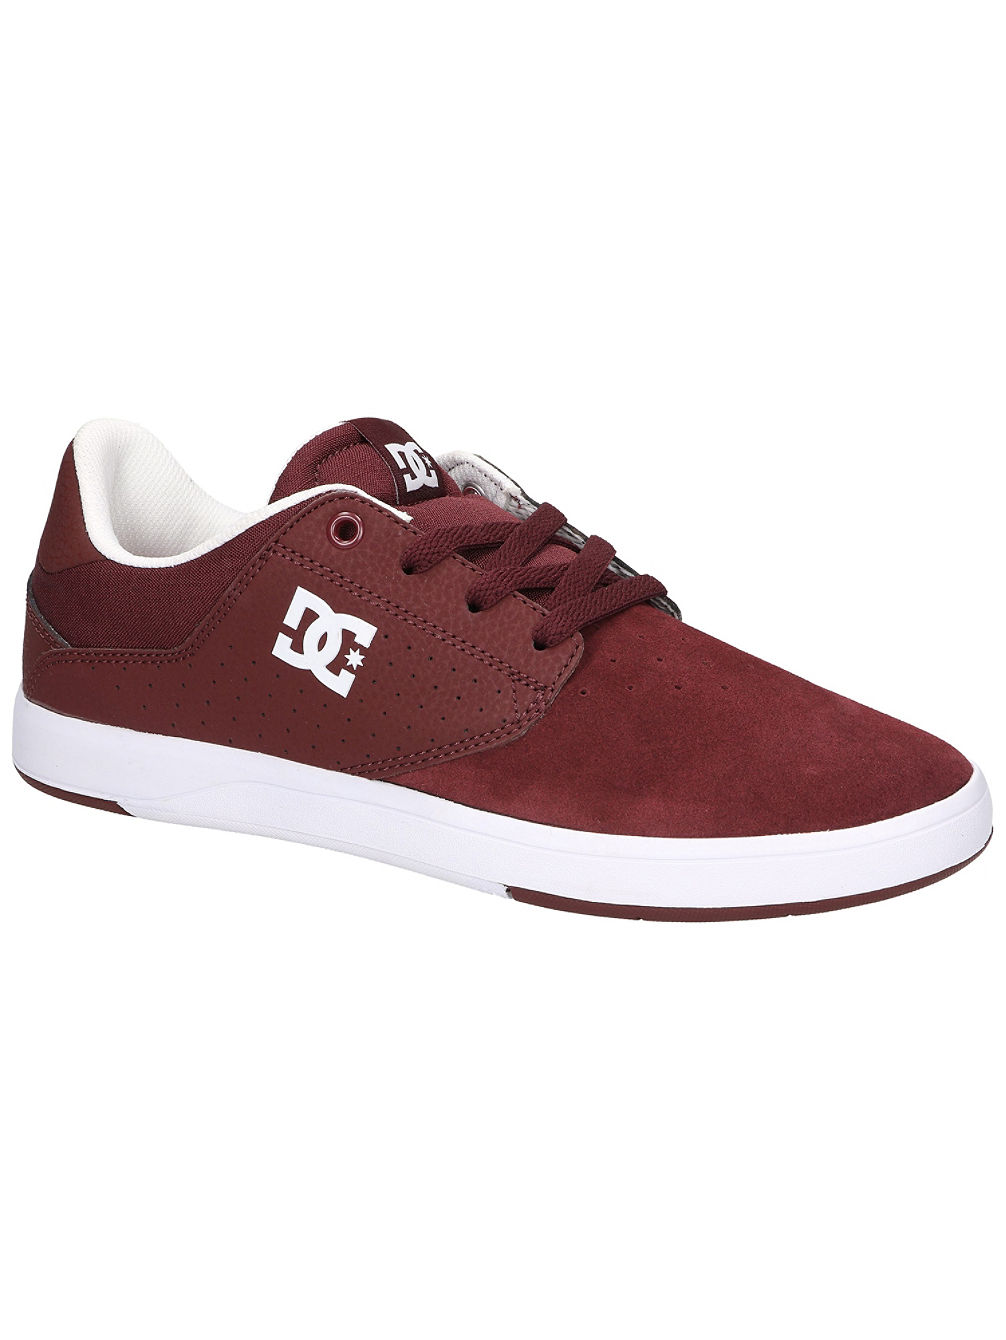 Plaza TC S Zapatillas de skate